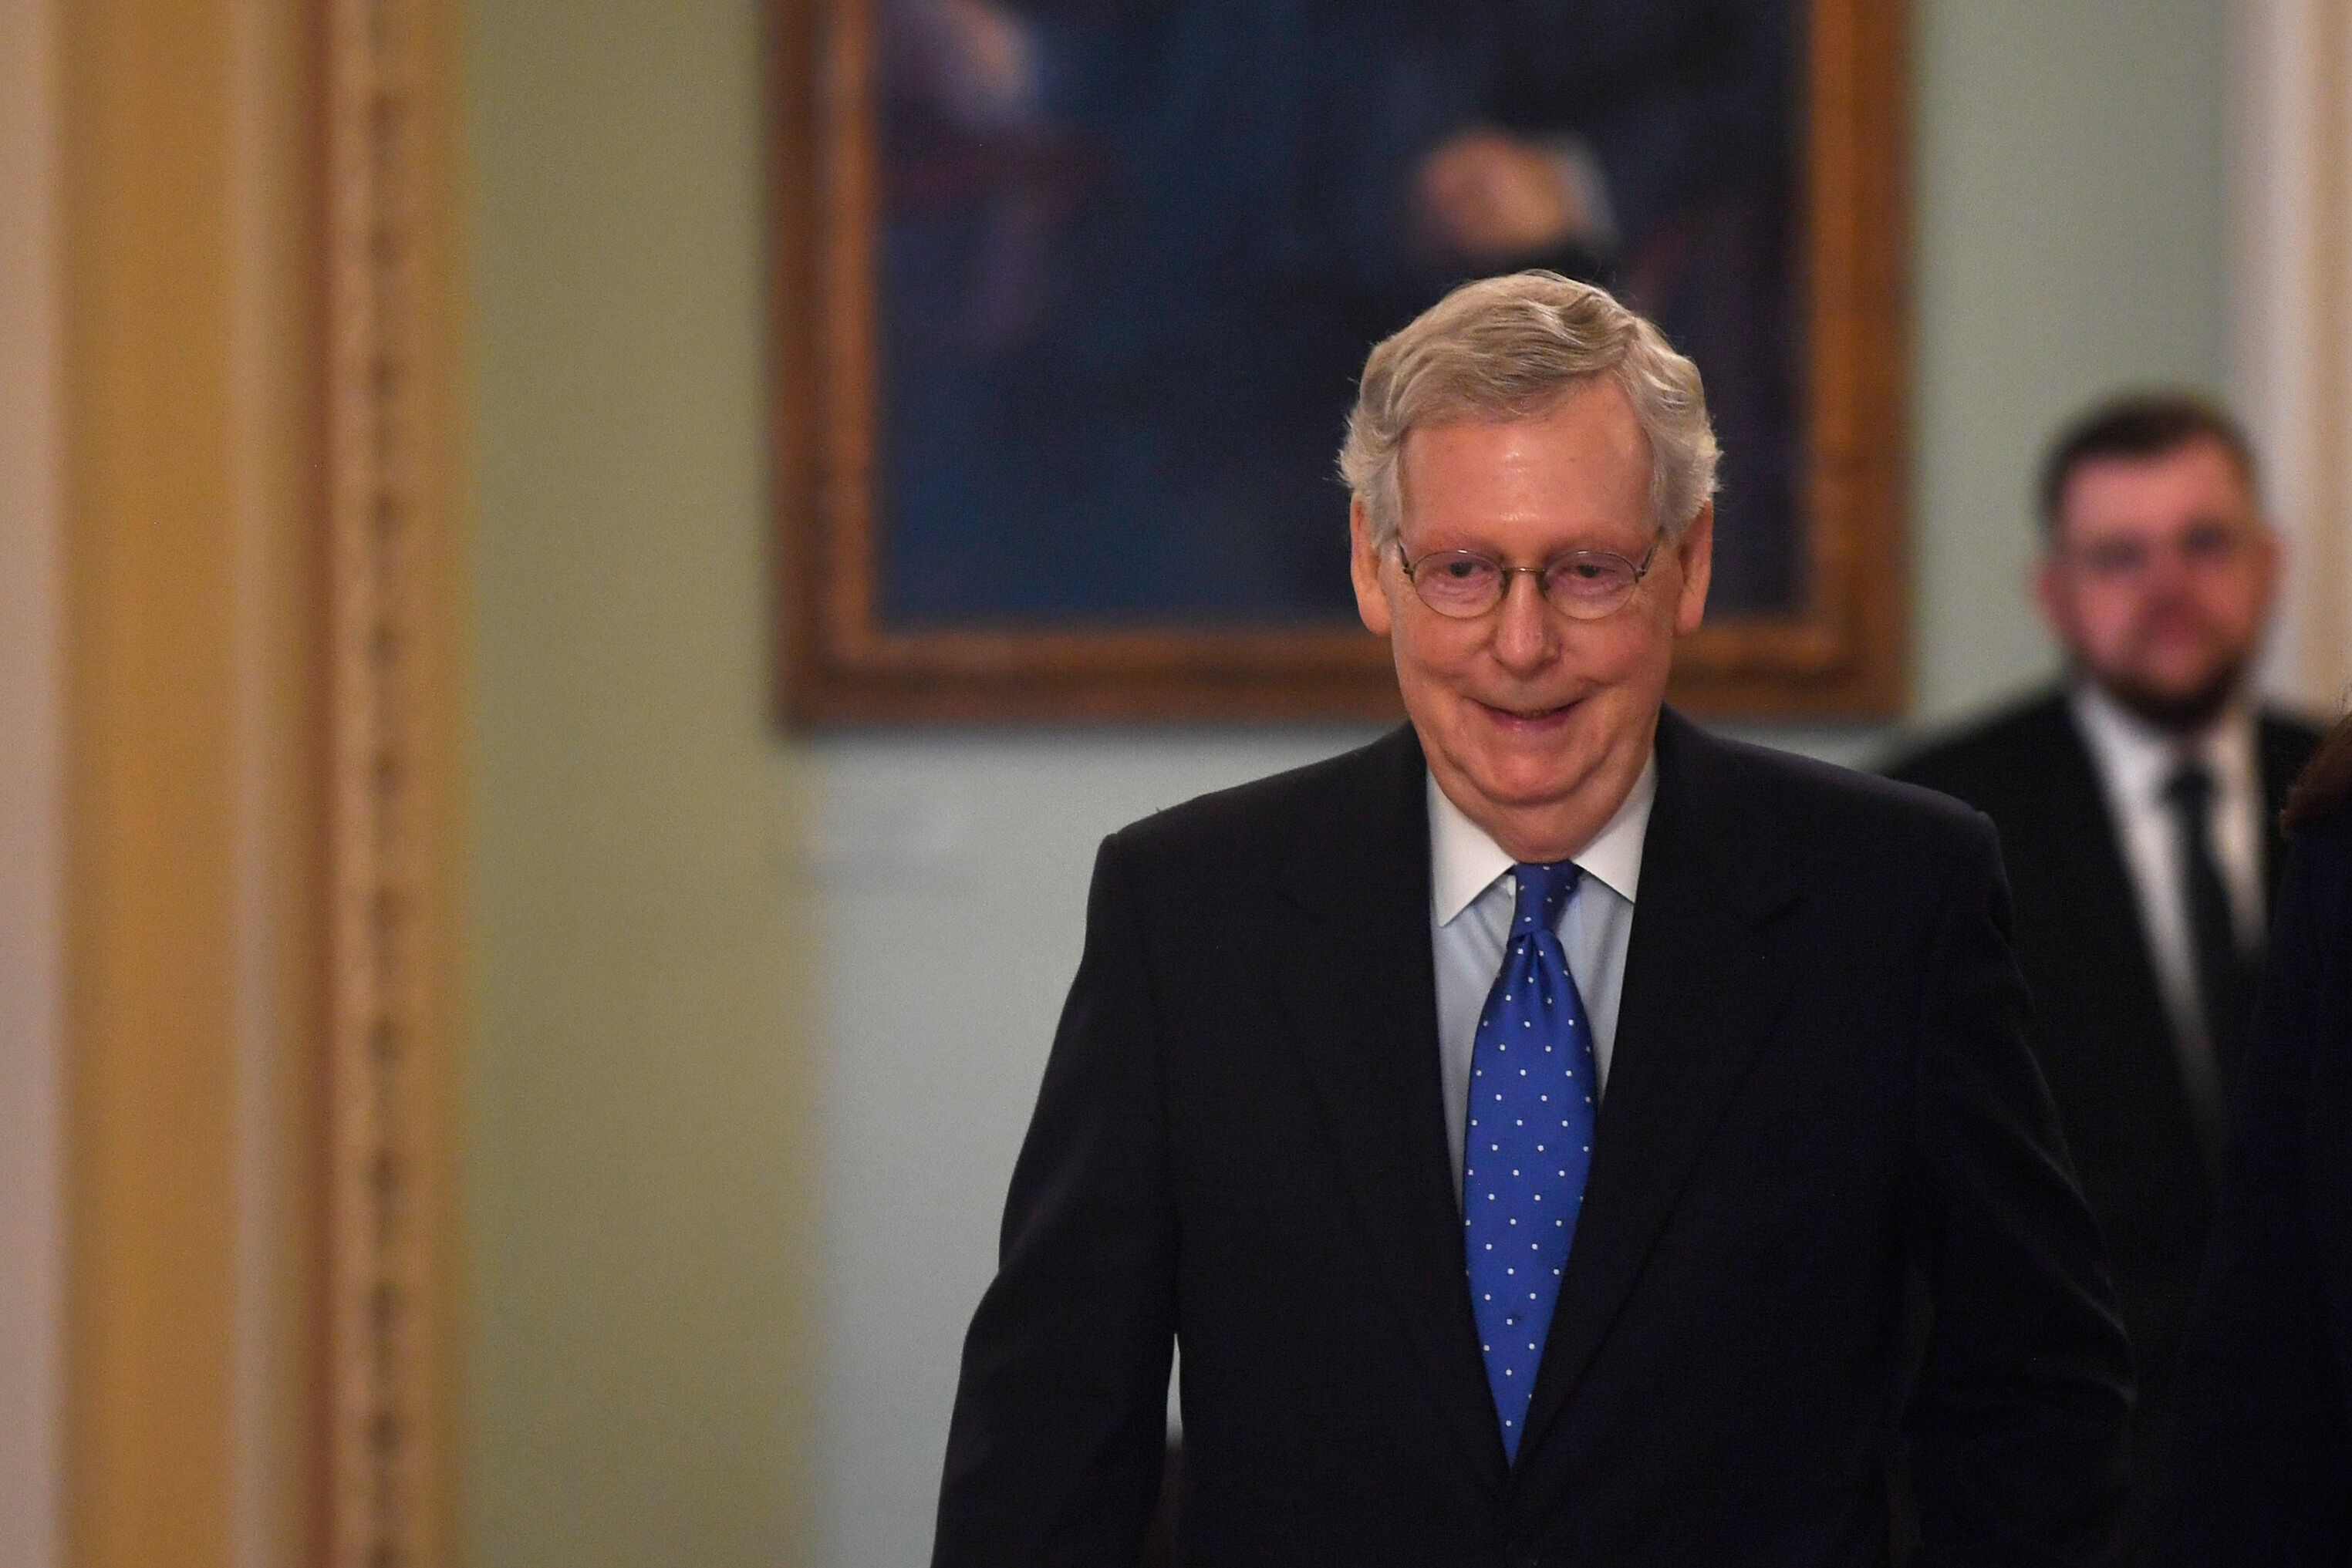 Senate Majority Leader Mitch McConnell (R-Ky.) is intent on filling up federal courts with as many of President Donald Trump'